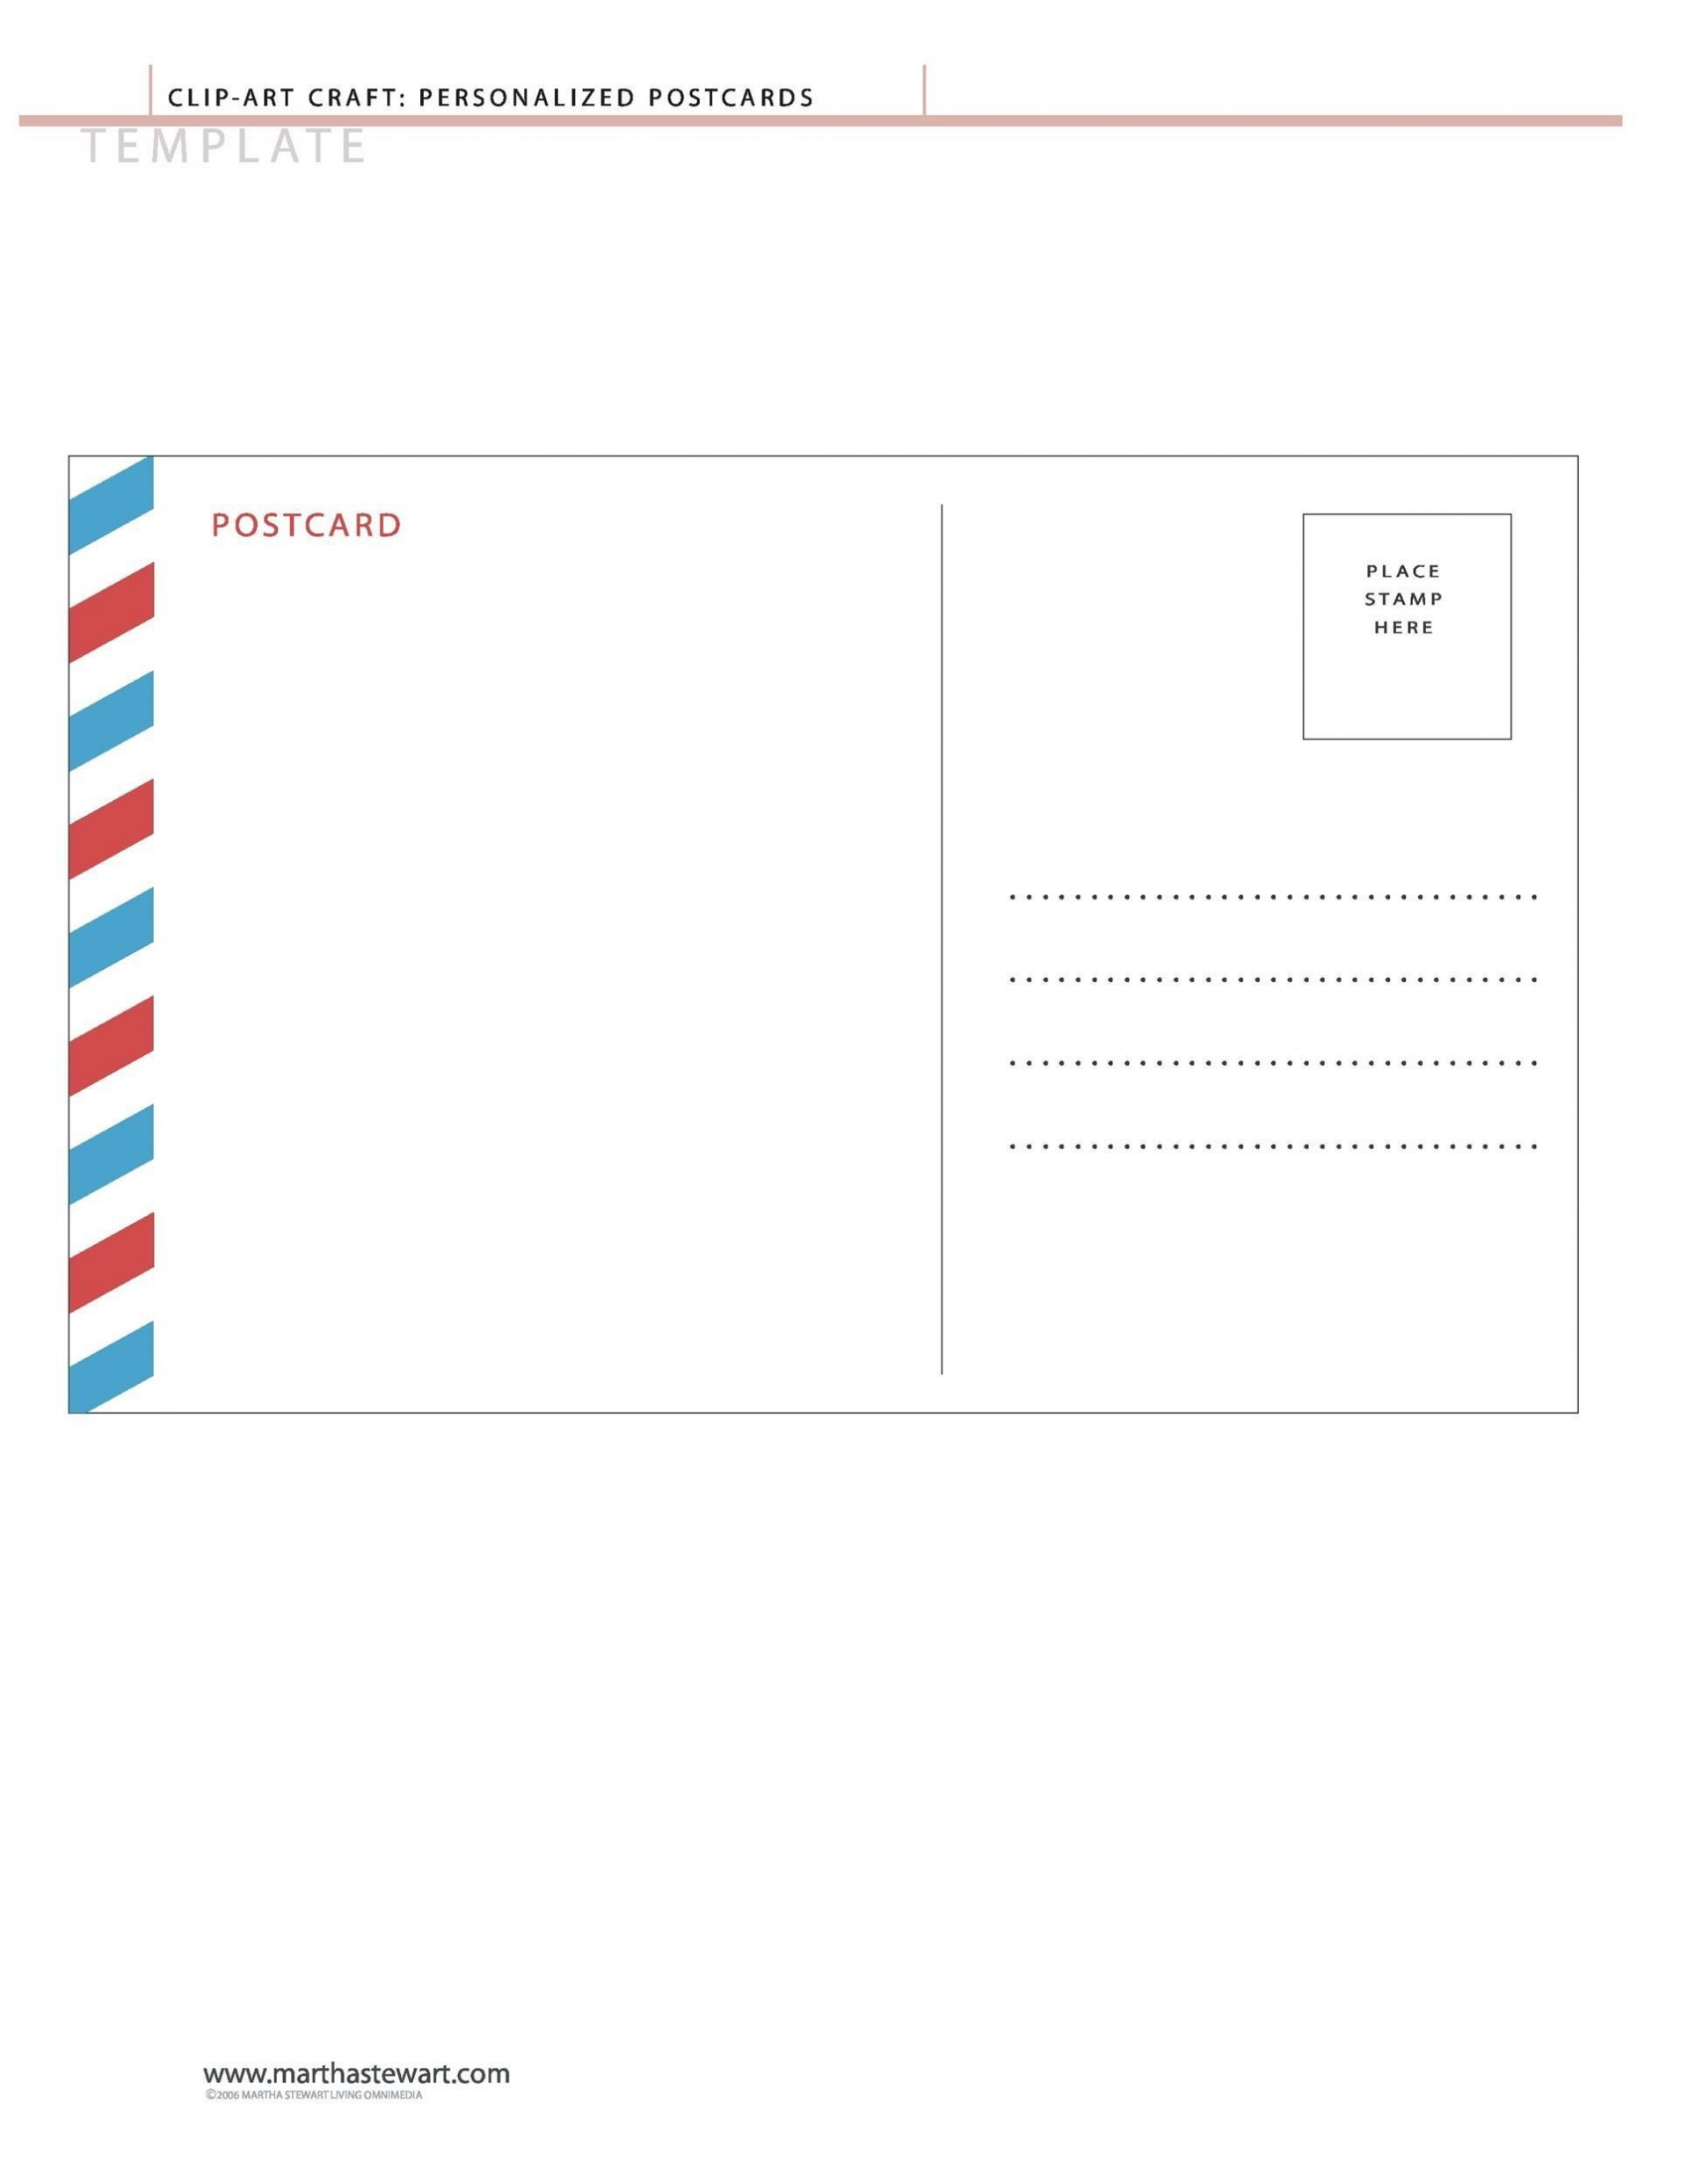 004 Top Postcard Layout For Microsoft Word Highest Quality  4 Template1920